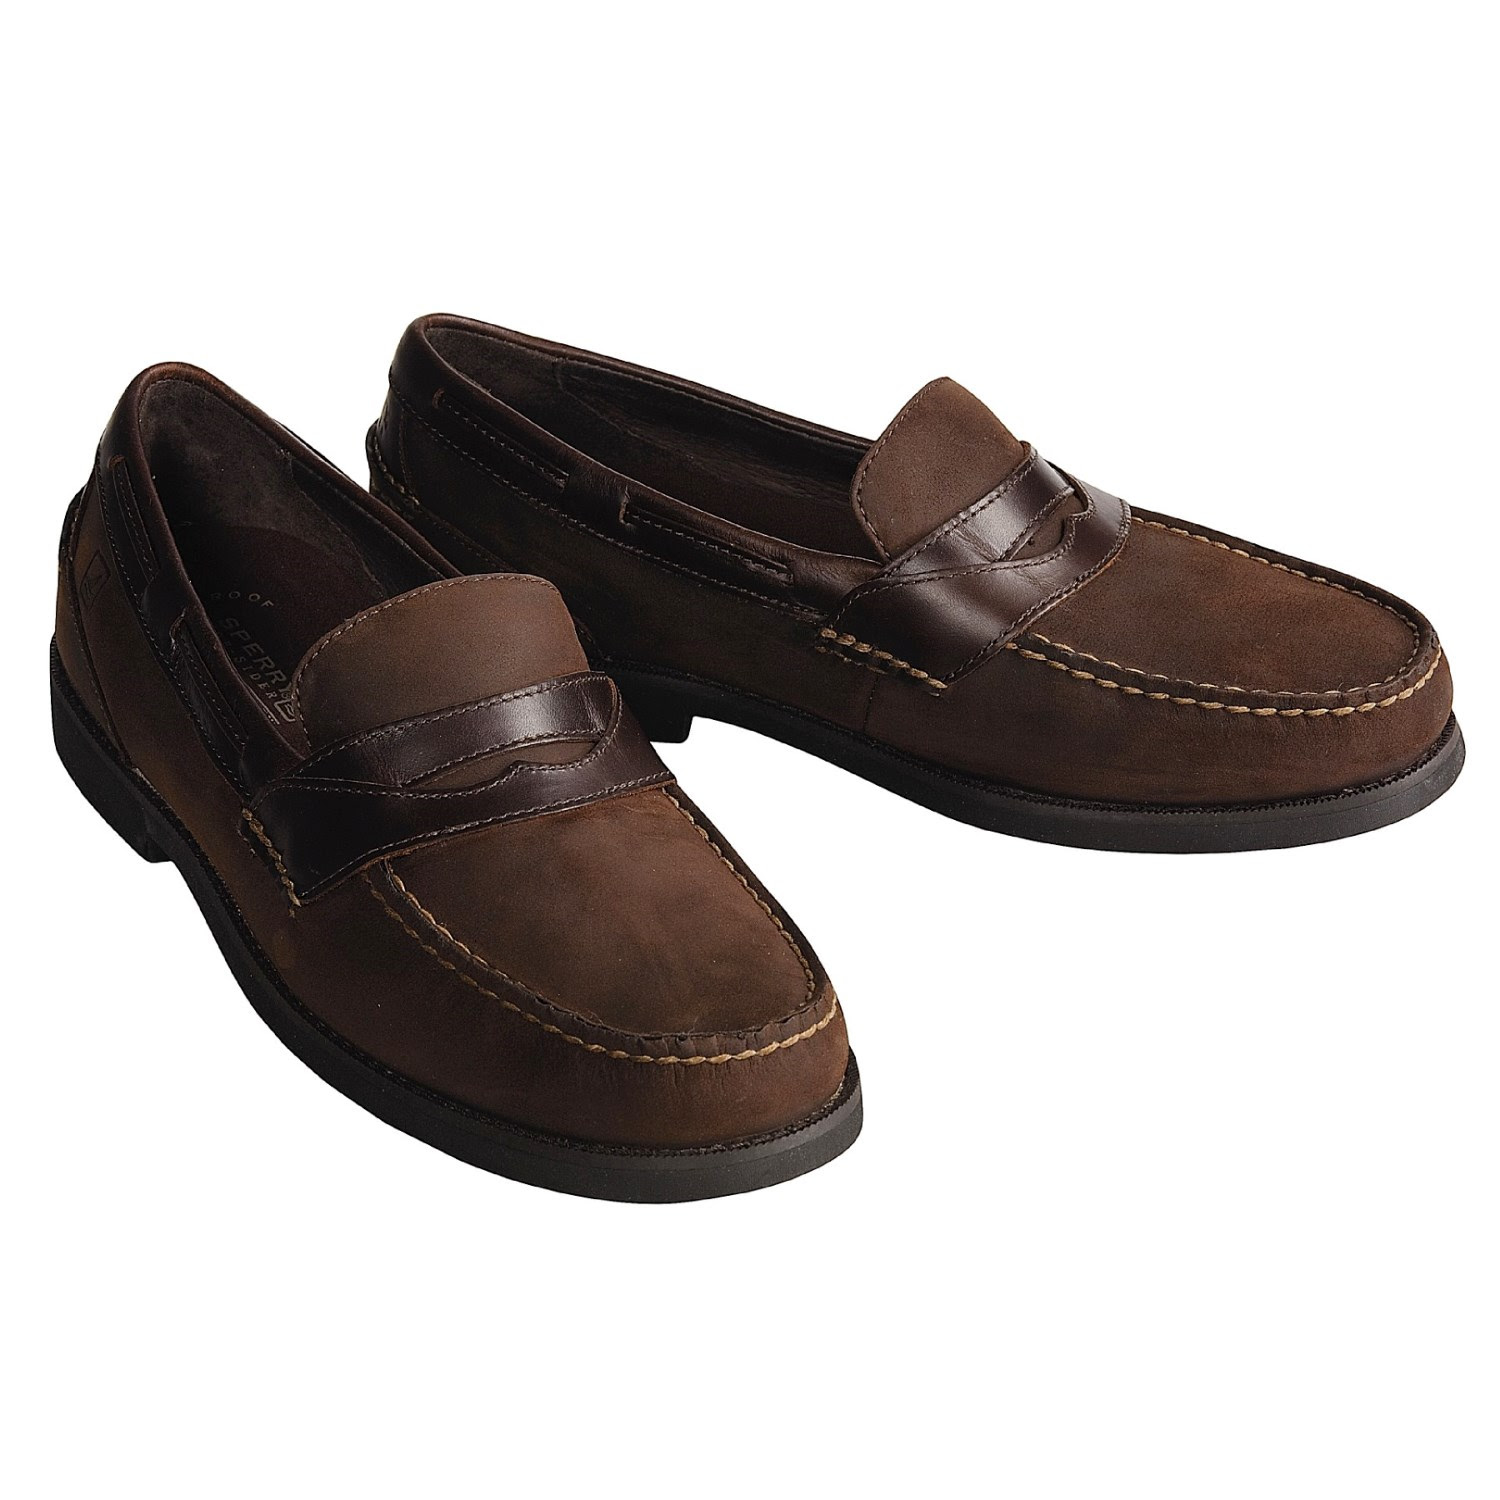 Sperry Top-Sider Seaport Penny Loafers (For Men) 95766